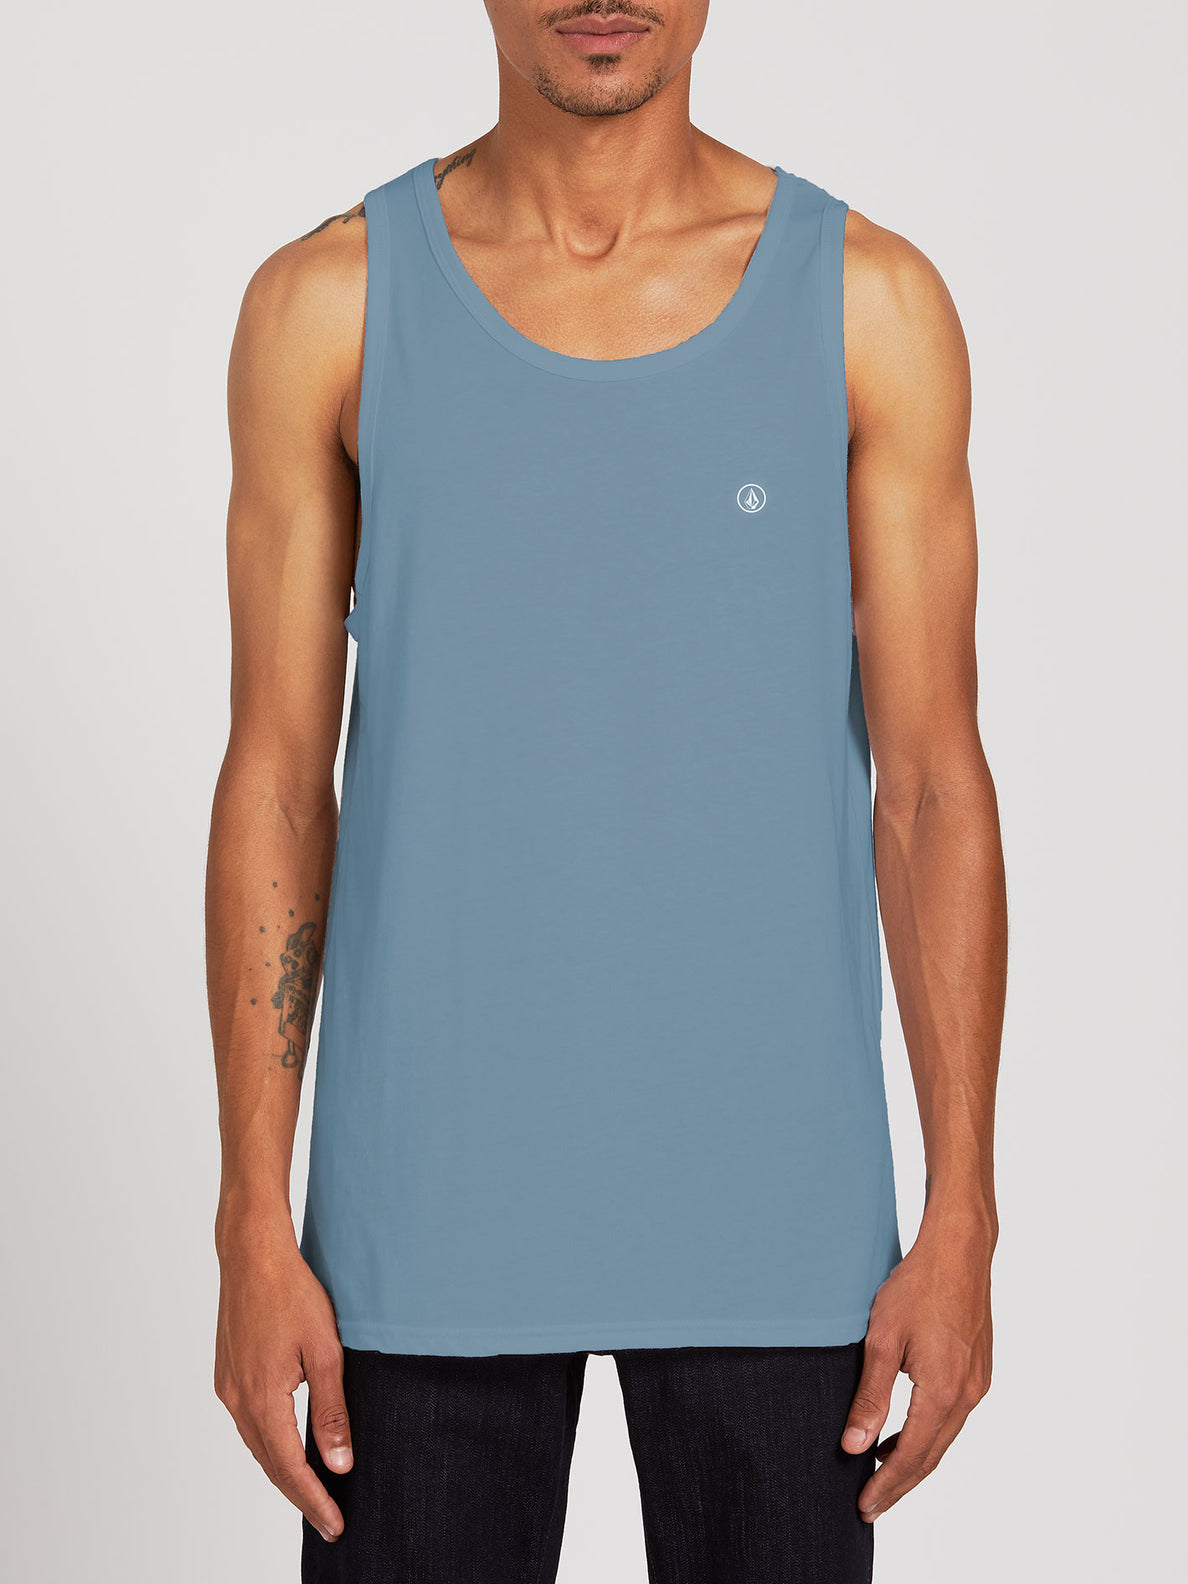 Solid Heather Tank - Stormy Blue (A4511704_STB) [F]